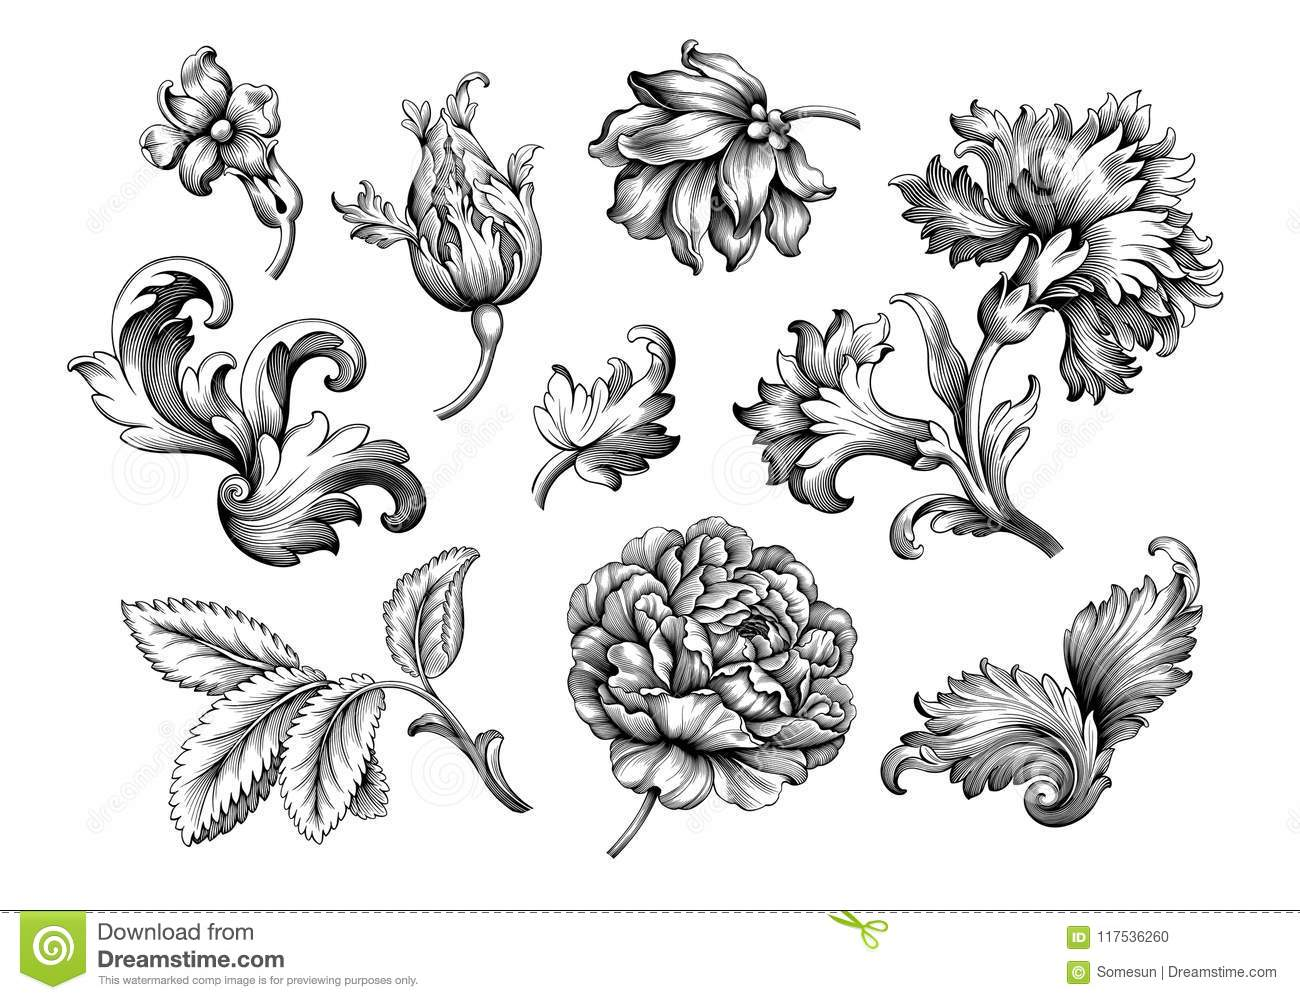 flower vector stock illustrations 876343 flower vector stock illustrations vectors clipart dreamstime